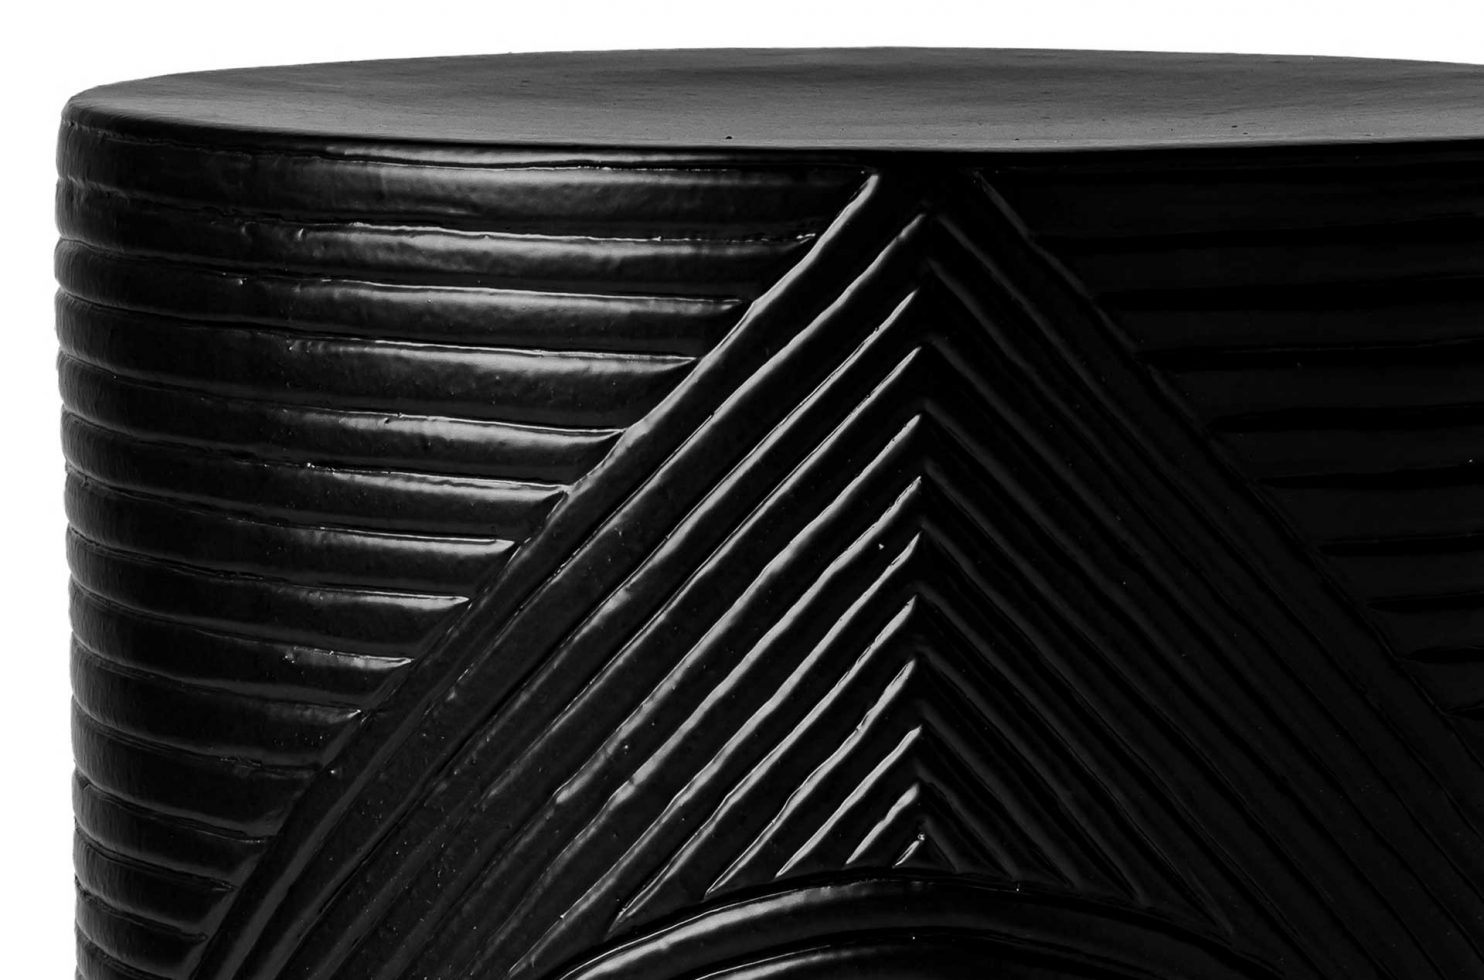 prov cer serenity textured side table 14in C30802532 coal dtl1 web